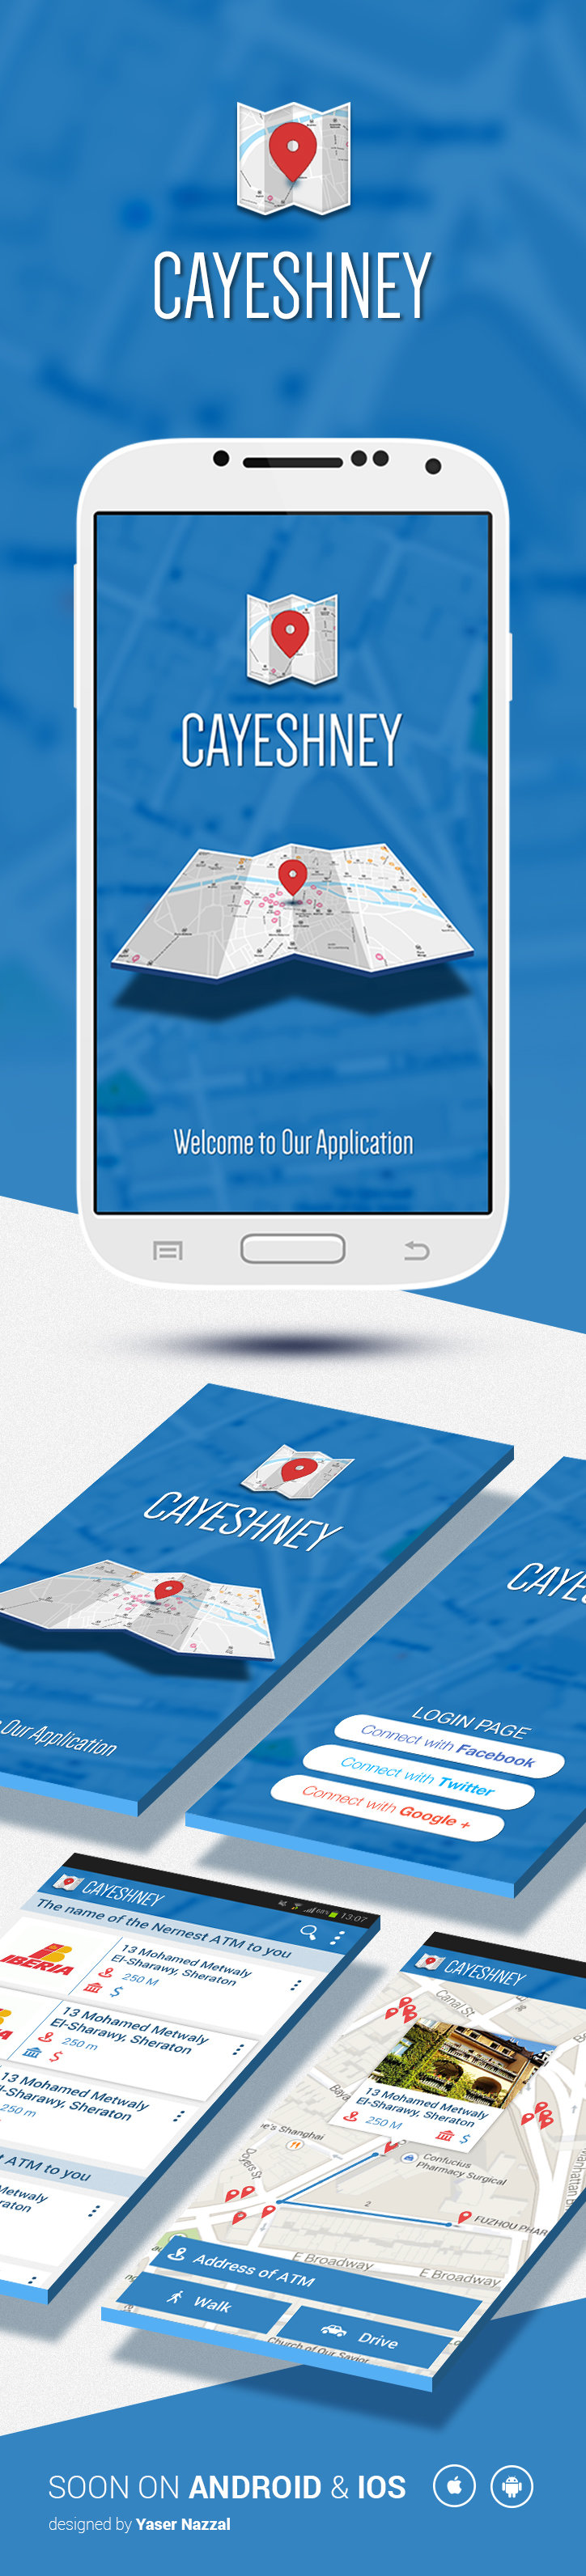 App Cayeshney Design